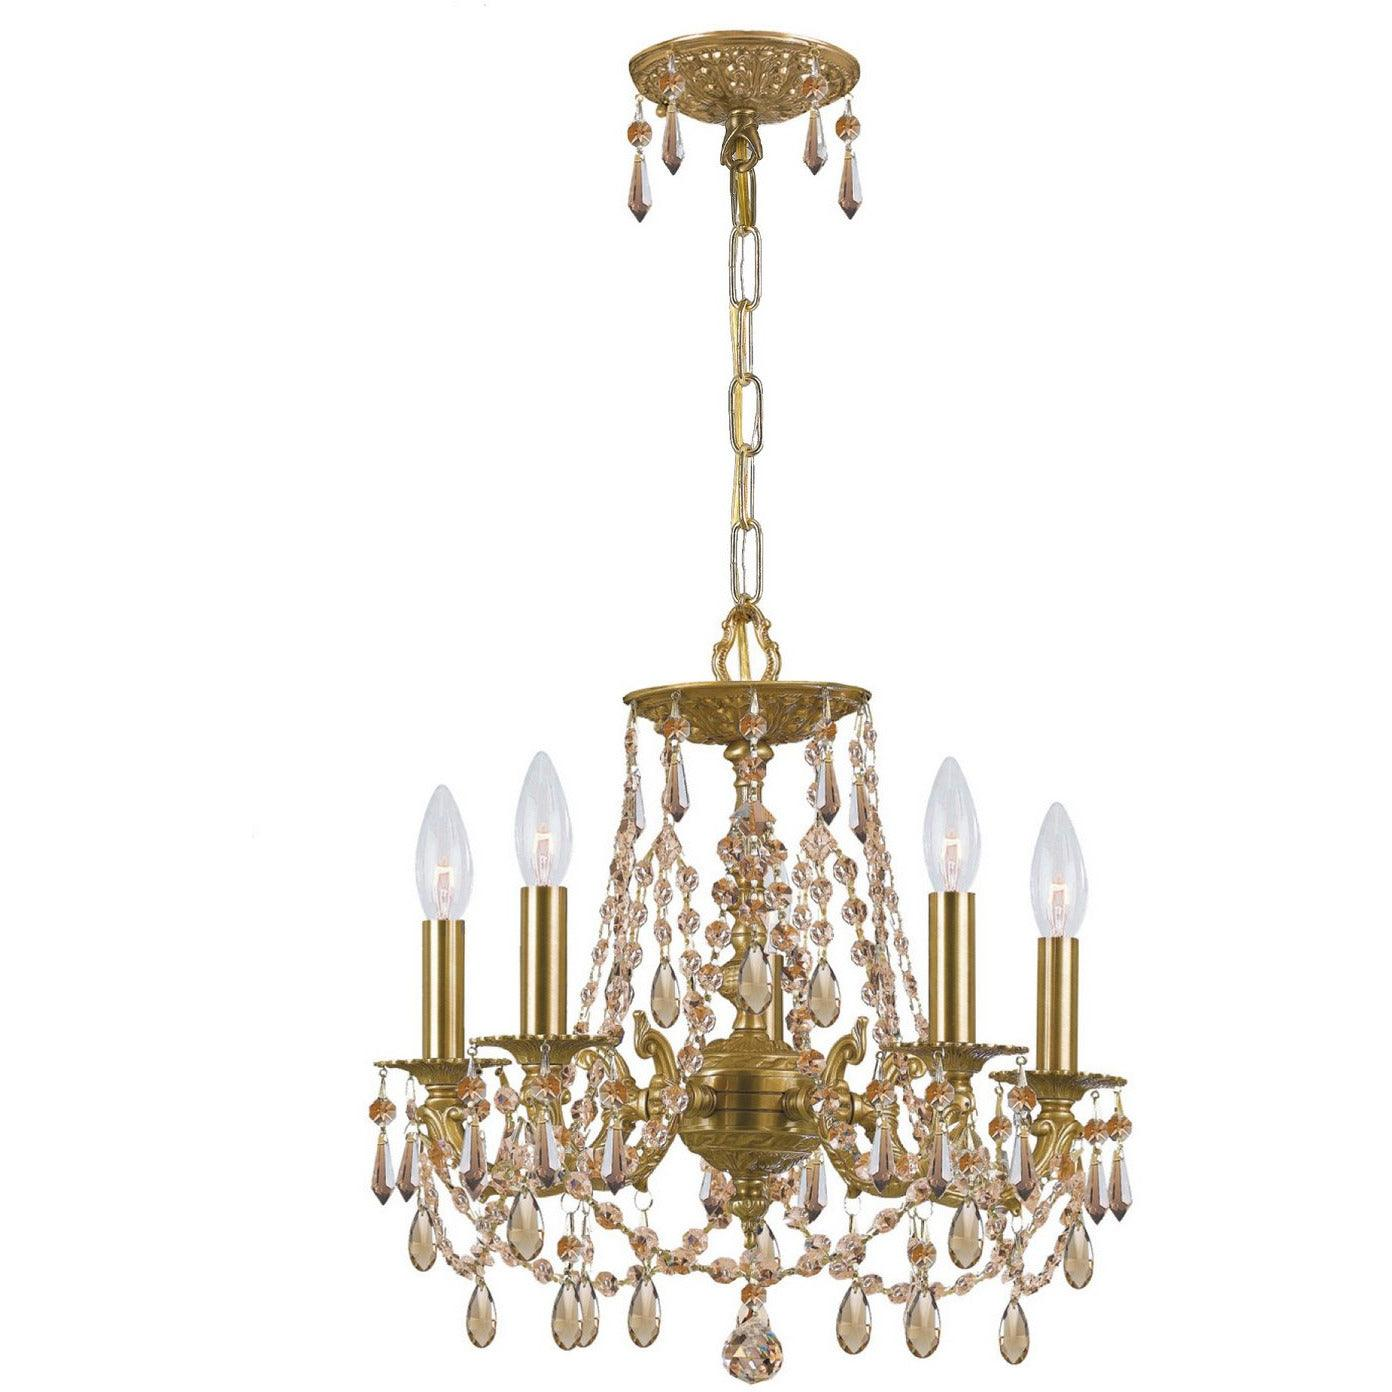 Crystorama - 5545-AG-GTS - Five Light Mini Chandelier - Gramercy - Aged Brass